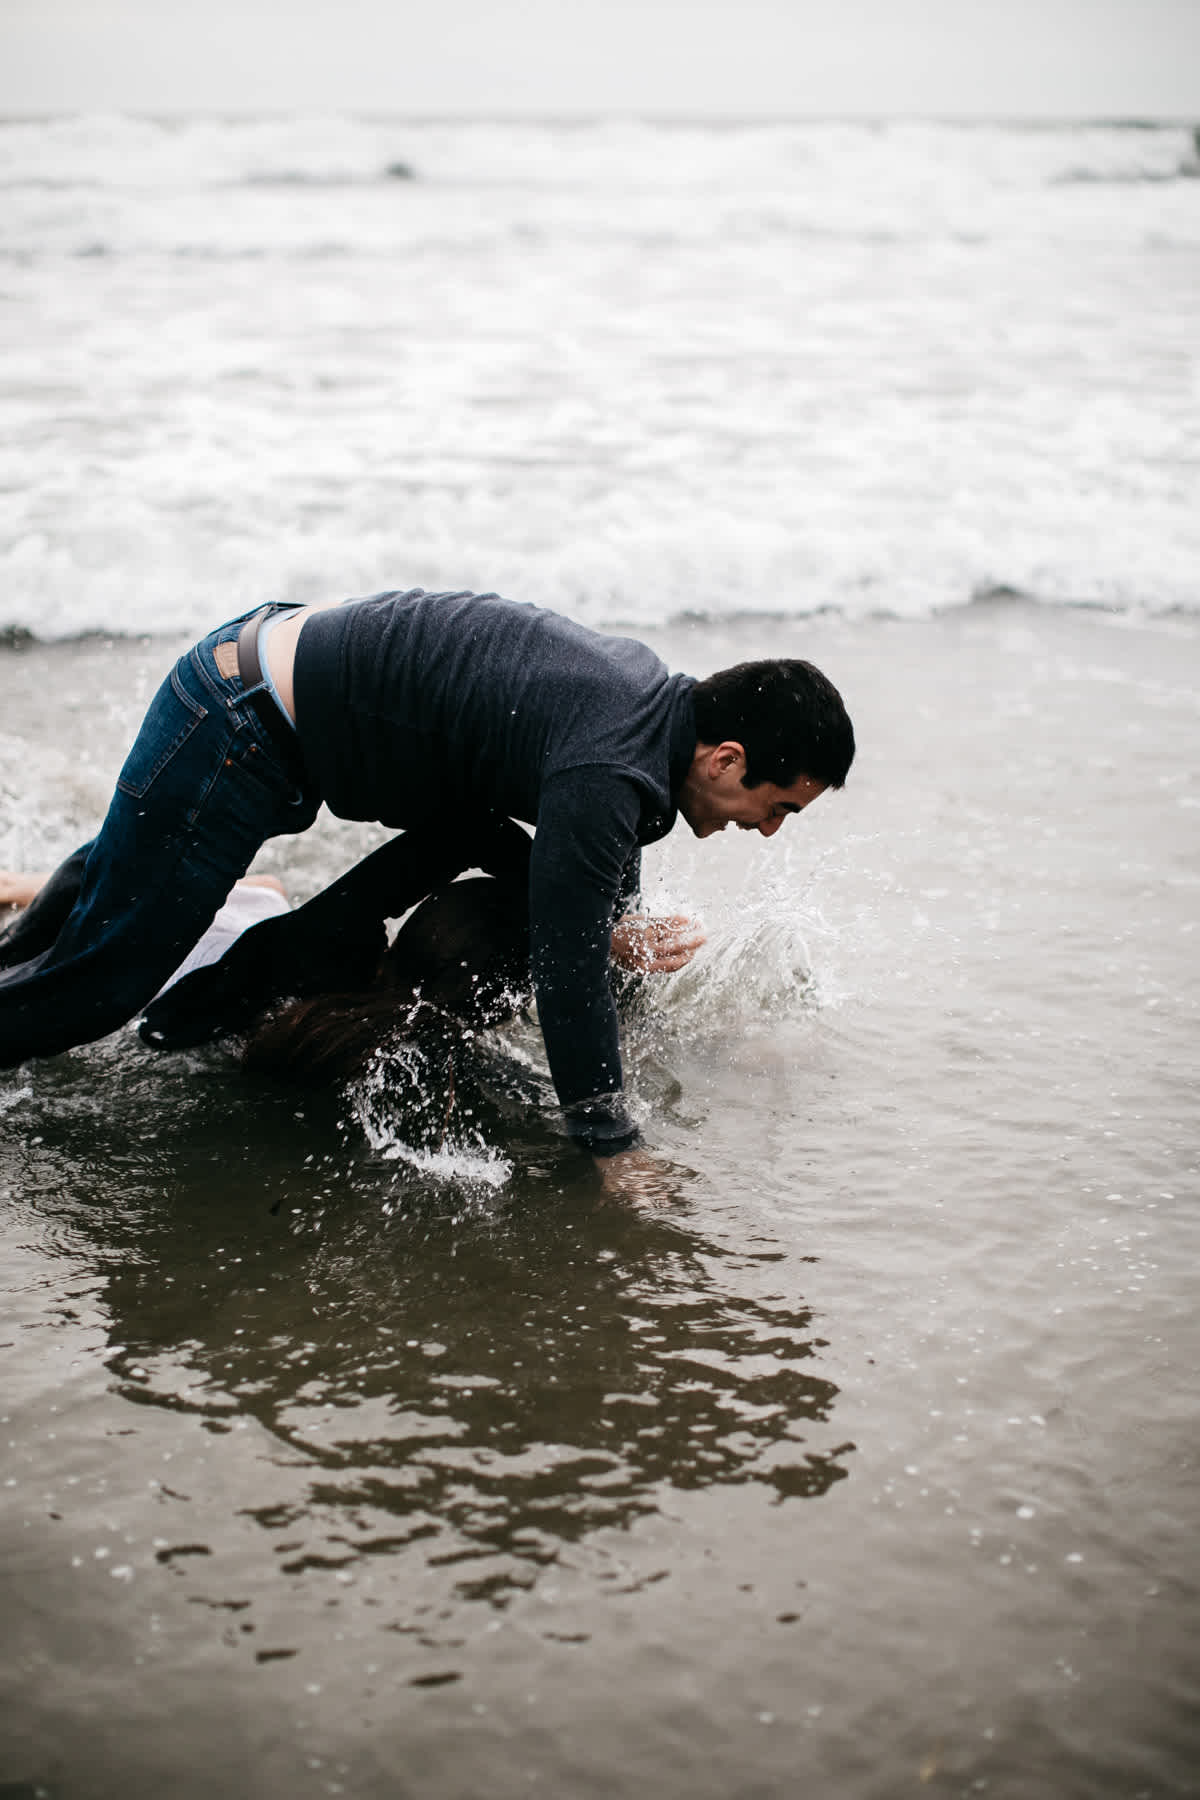 fort-funston-foggy-fun-beach-water-engagement-session-62